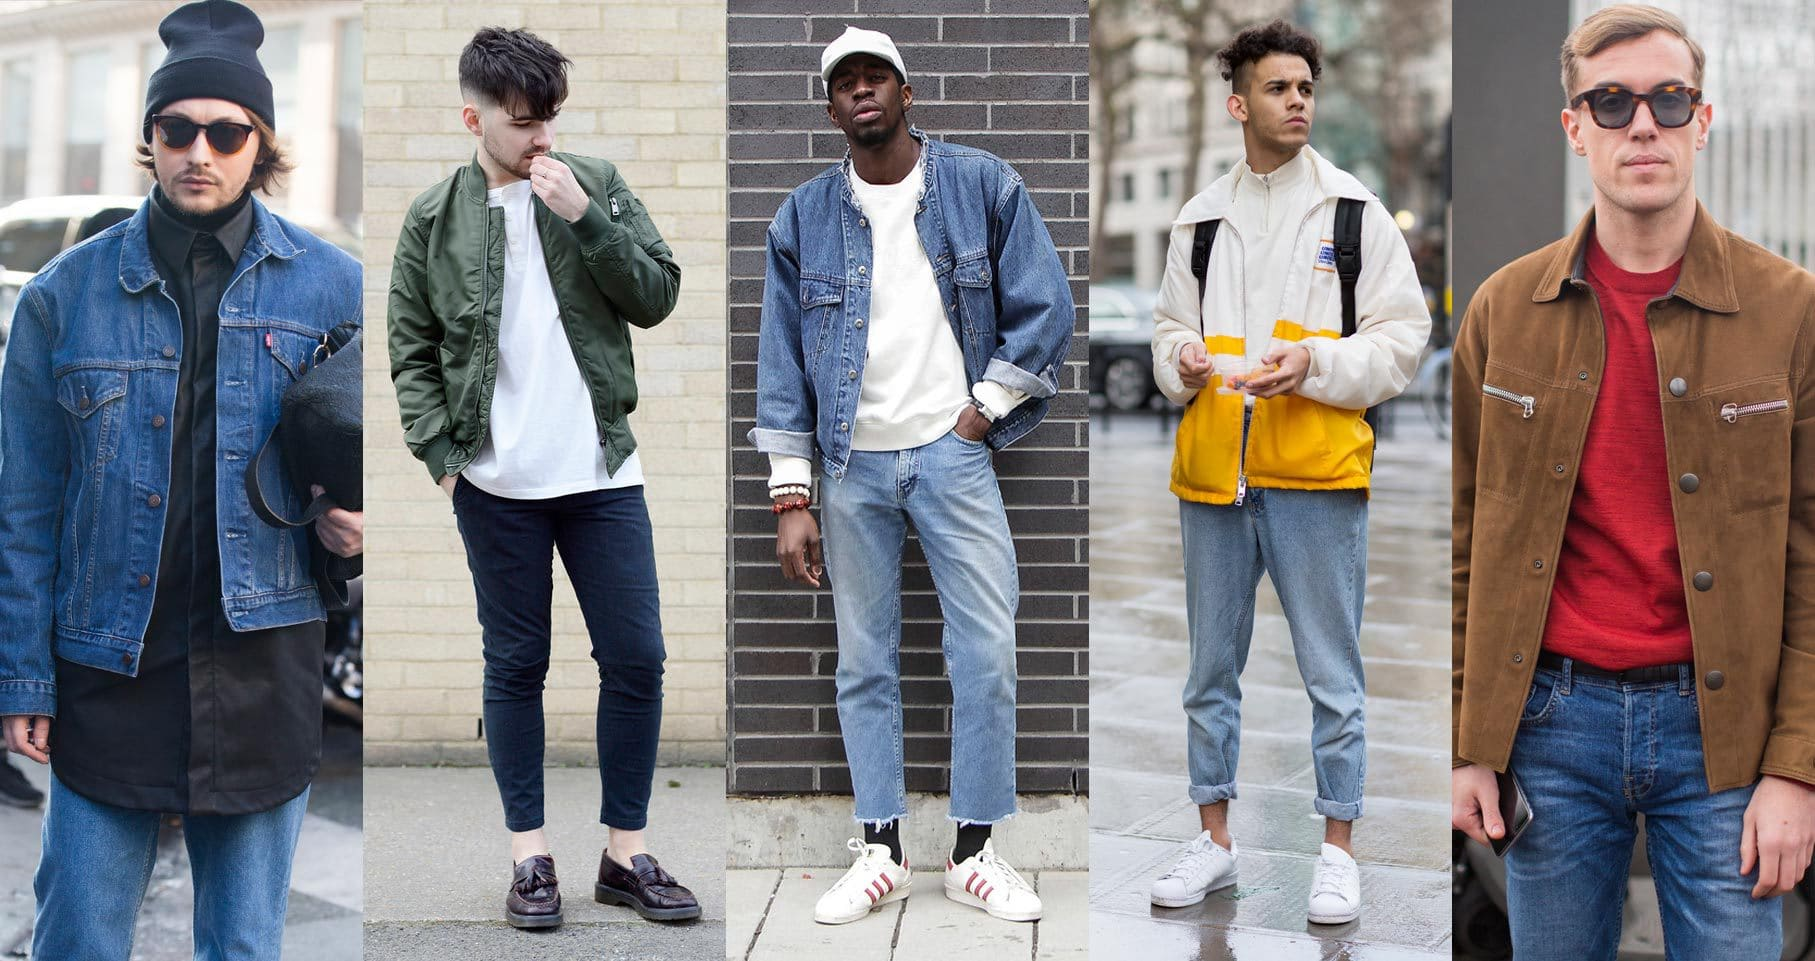 How to Rock 90 s Fashion  Men s Outfit Guide 2018 Fashion in the 90 s